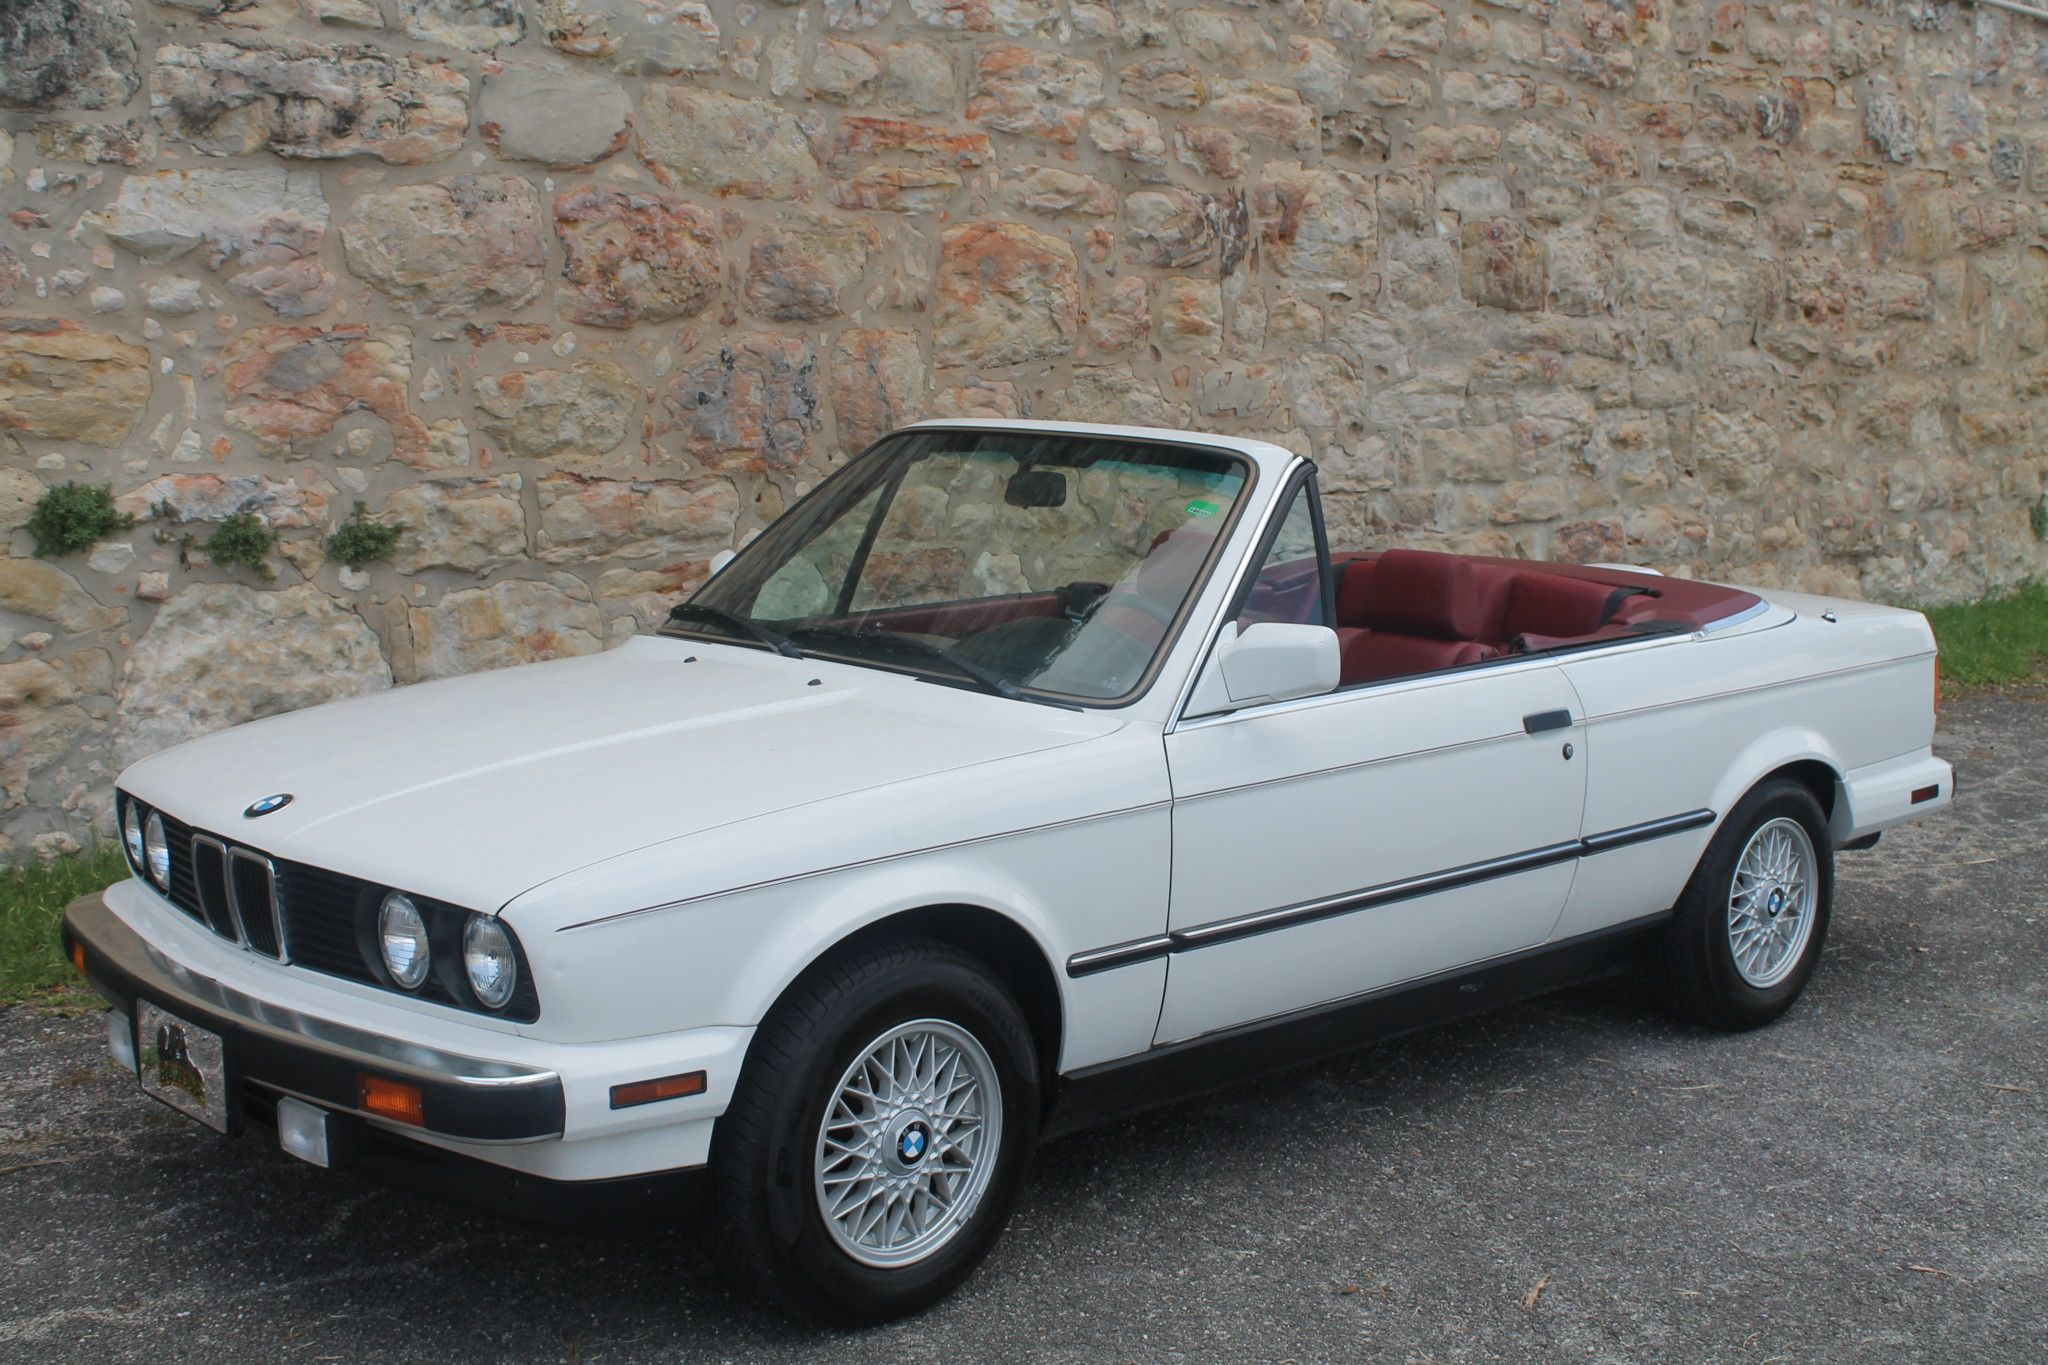 52k Mile 1990 Bmw 325i Convertible 5 Speed E30 Convertible Bmw